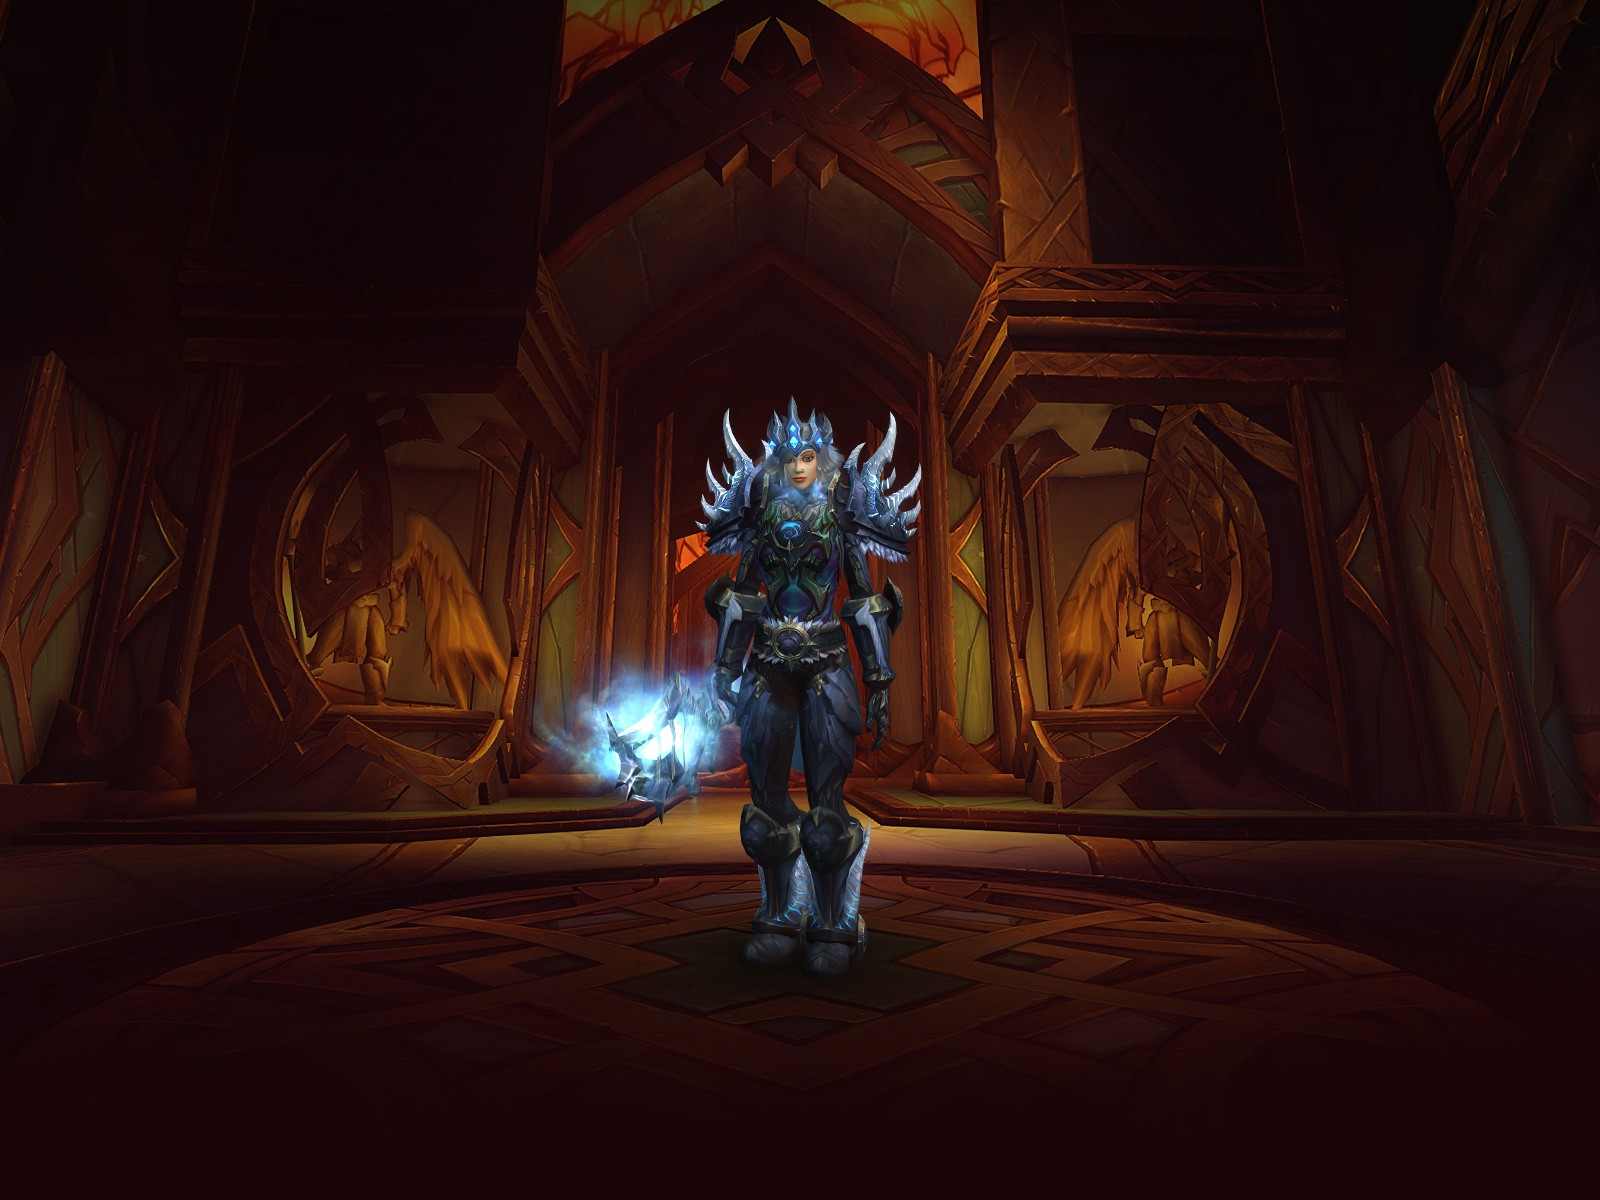 Rate the transmog above you - part 14 - Transmogrification